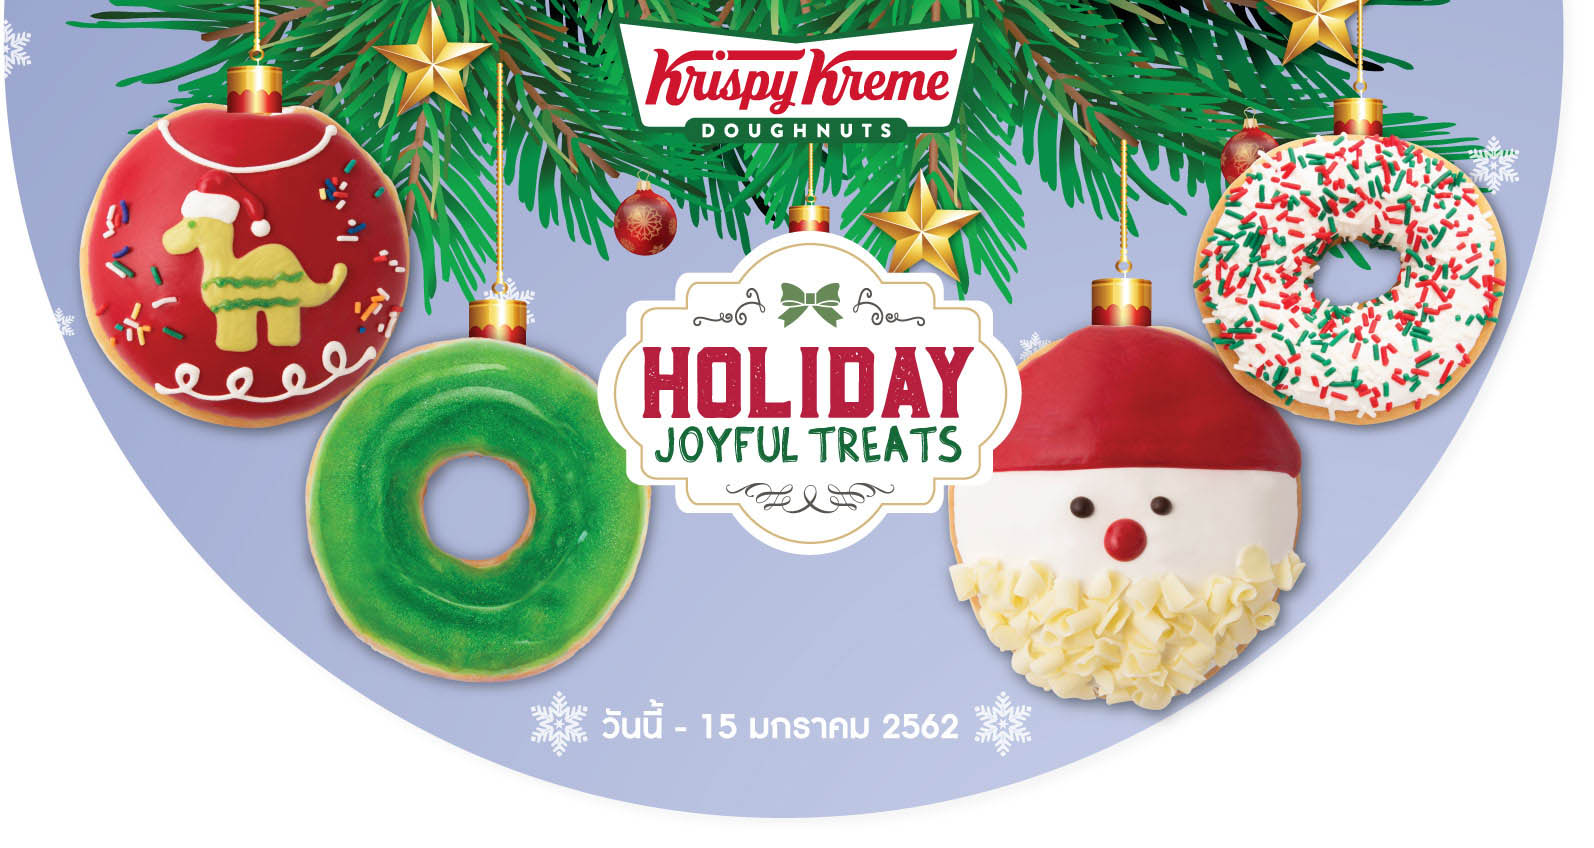 krispykreme_website_11.28.2018_holiday-joy